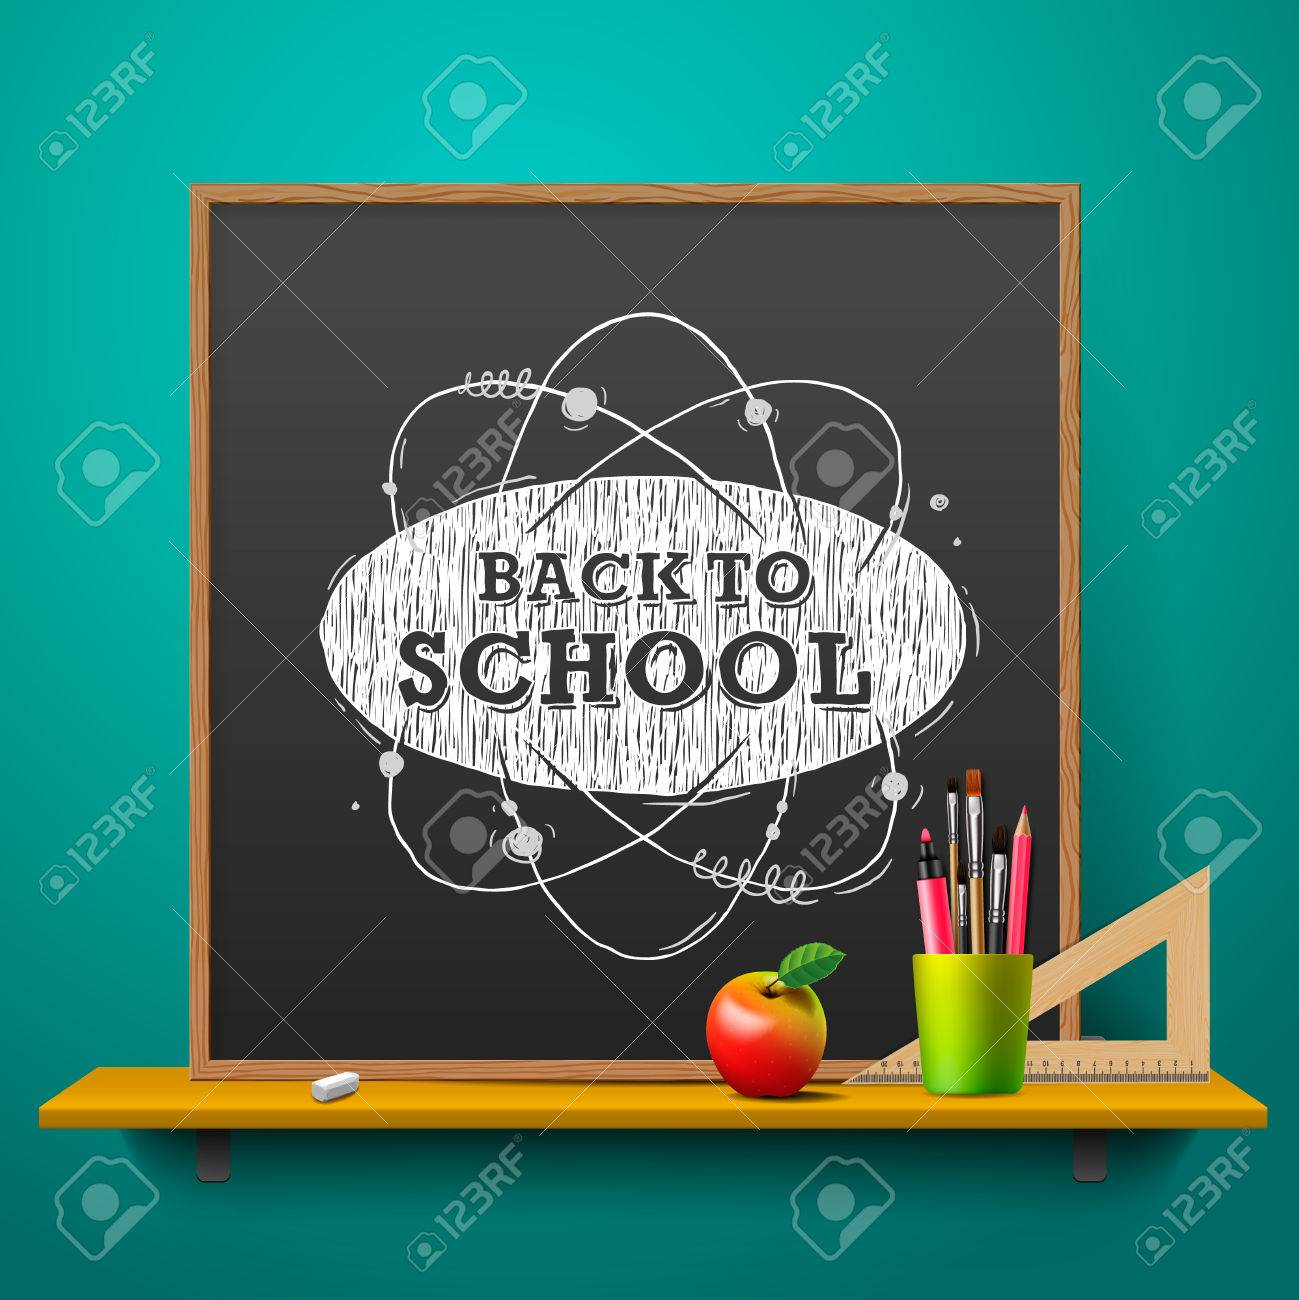 Back to school abstract background Standard-Bild - 42395094